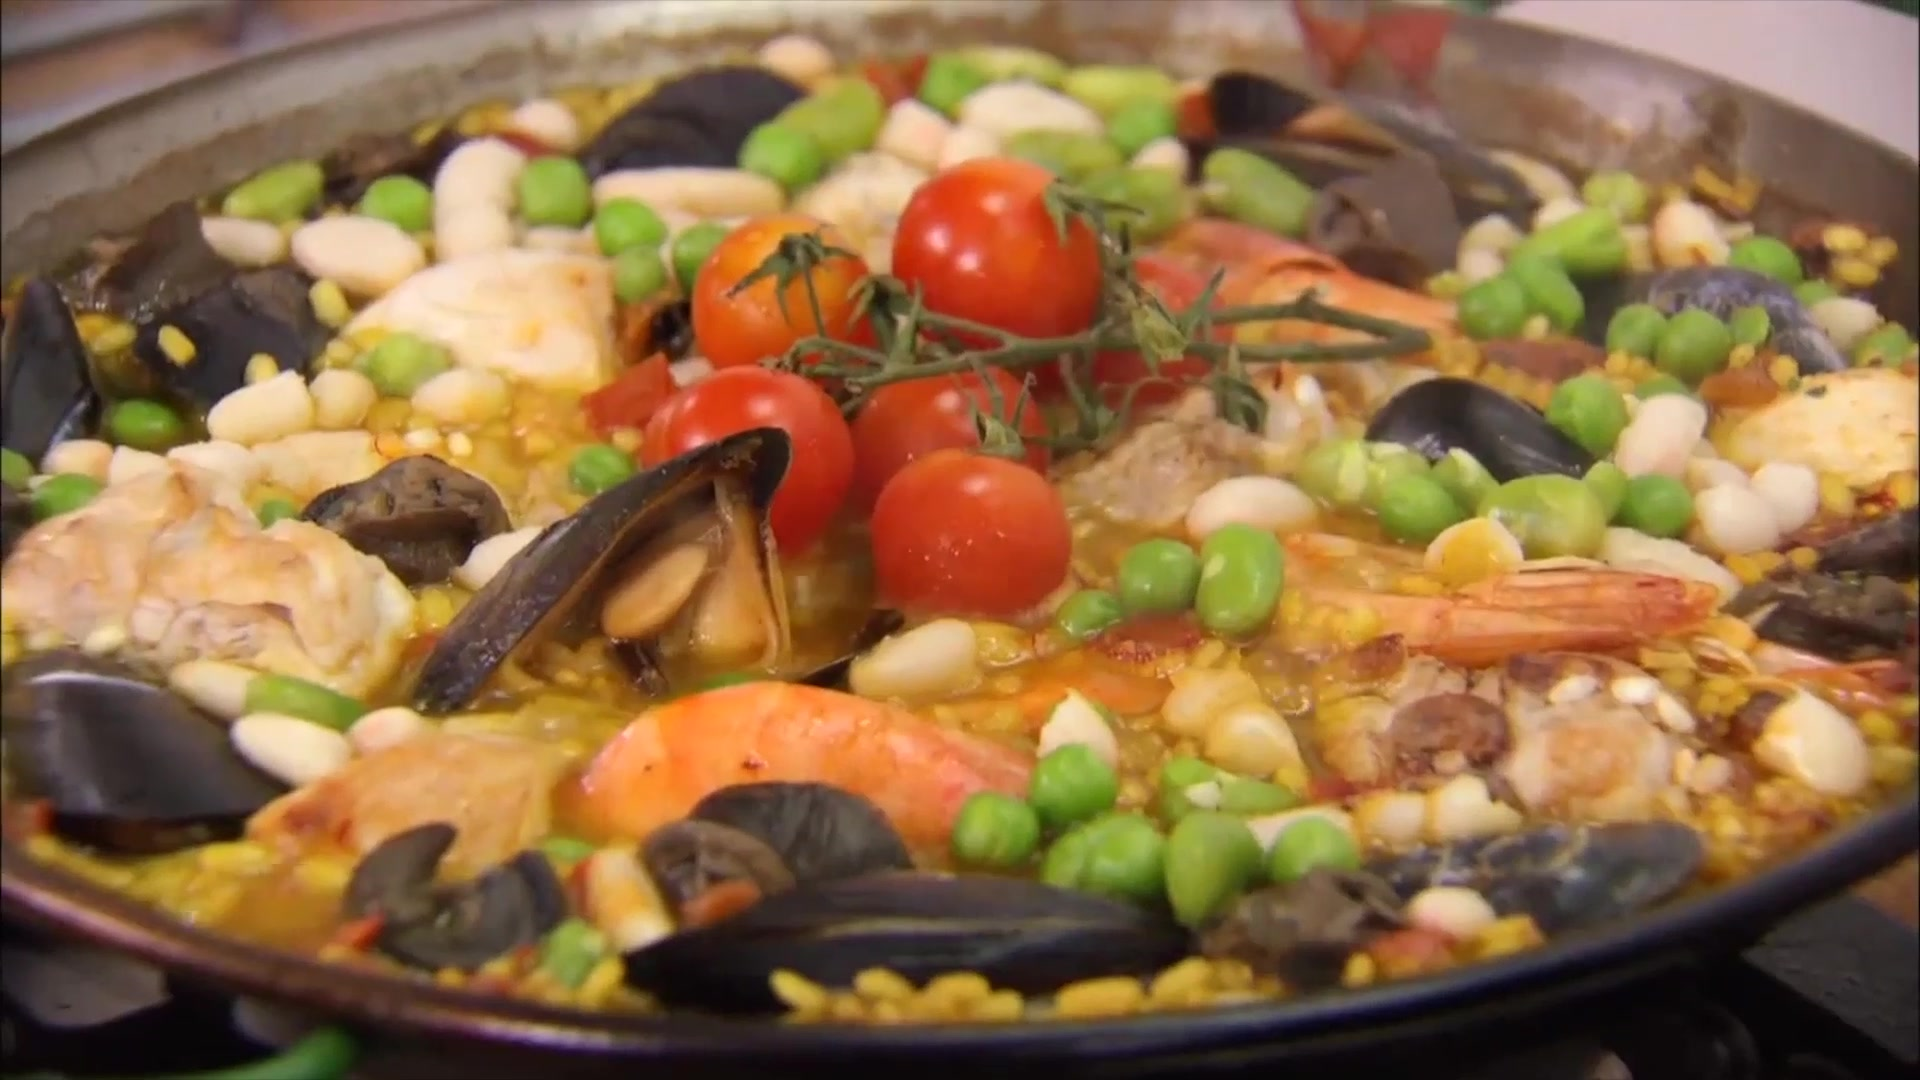 How to Make a Rabbit Paella